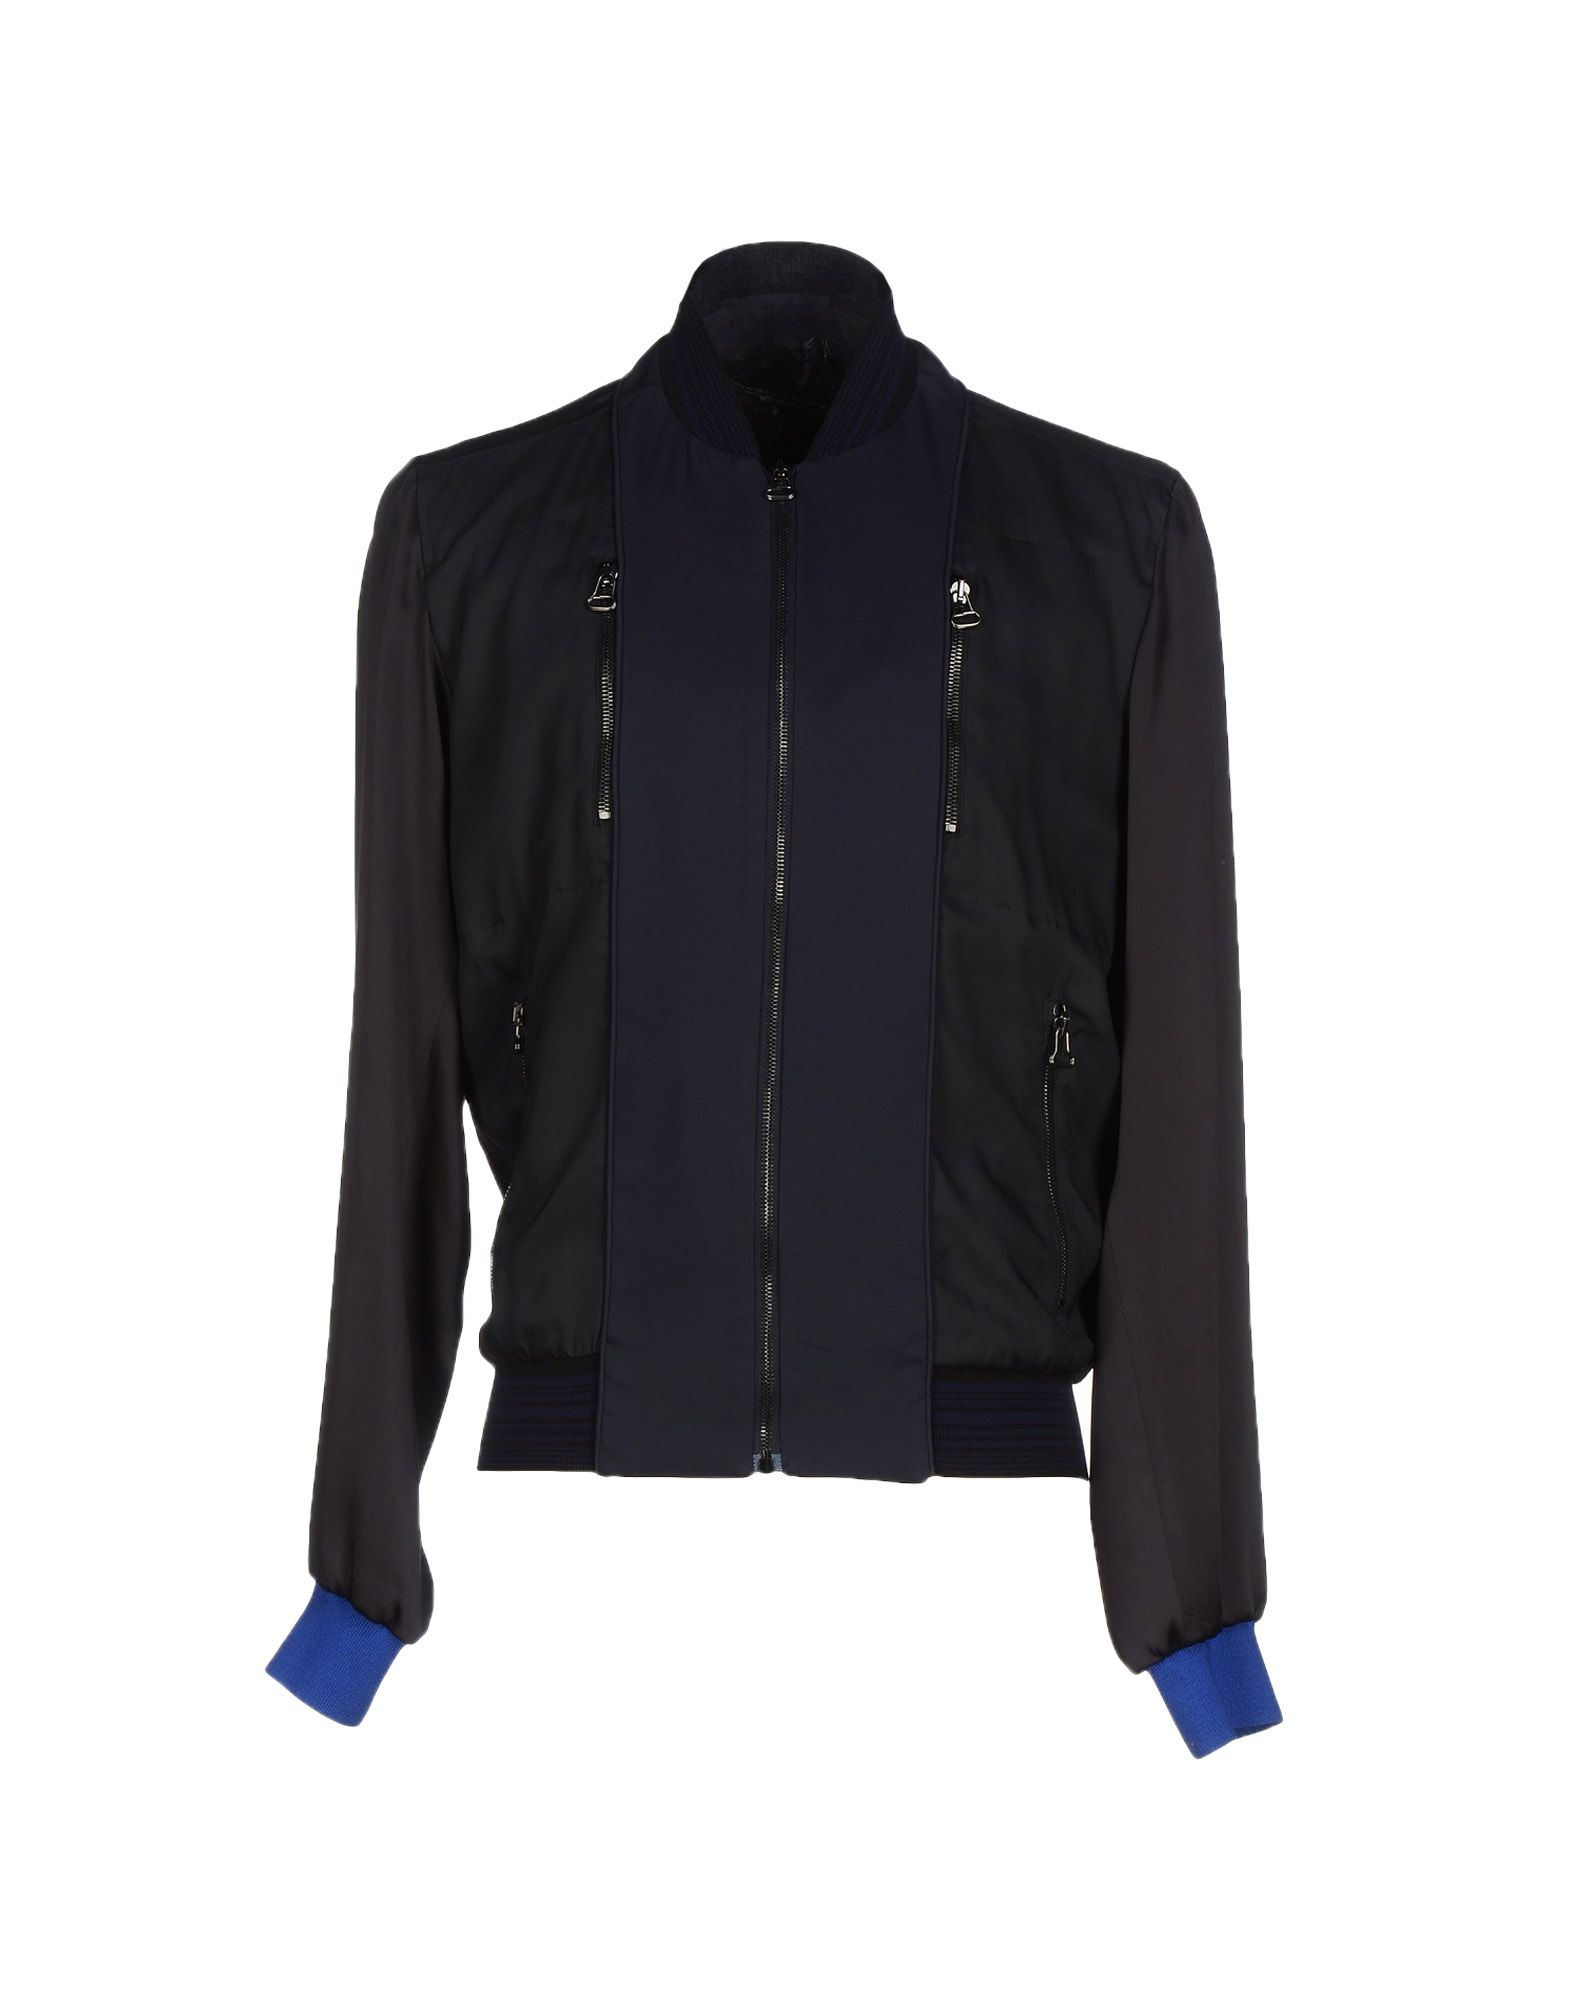 Lanvin Jacket in Blue for Men